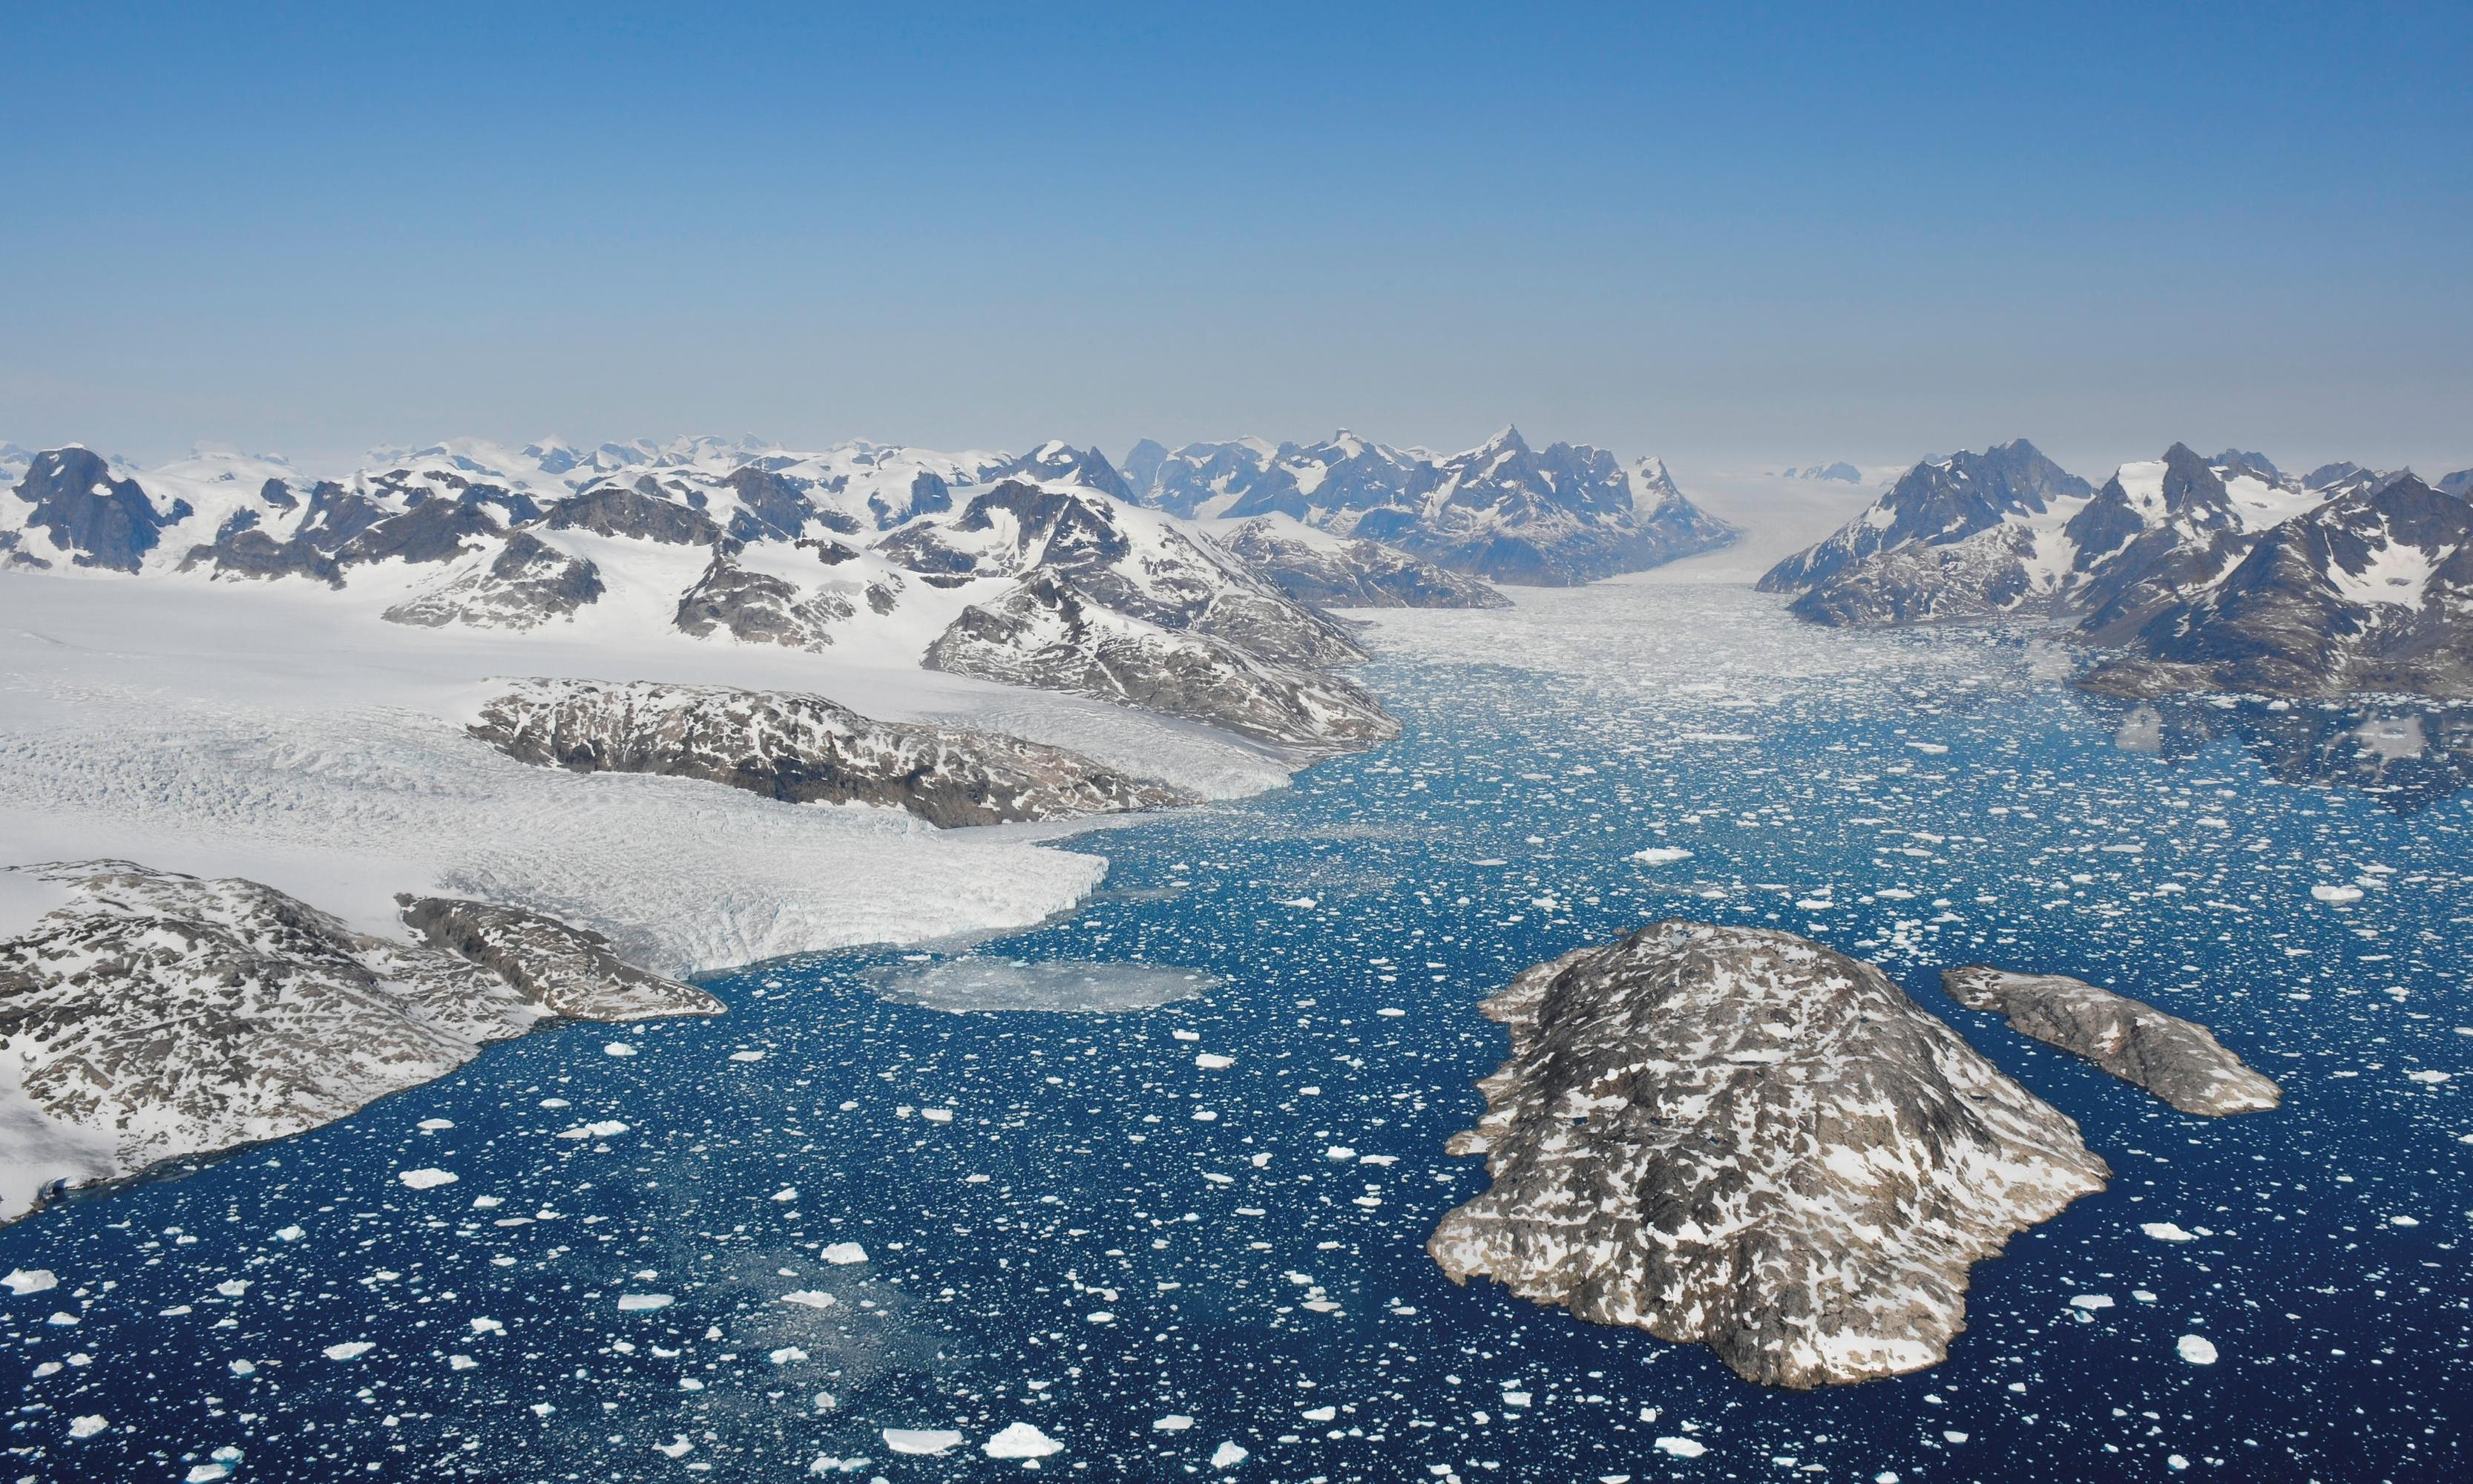 Greenland's ice sheet melting seven times faster than in 1990s